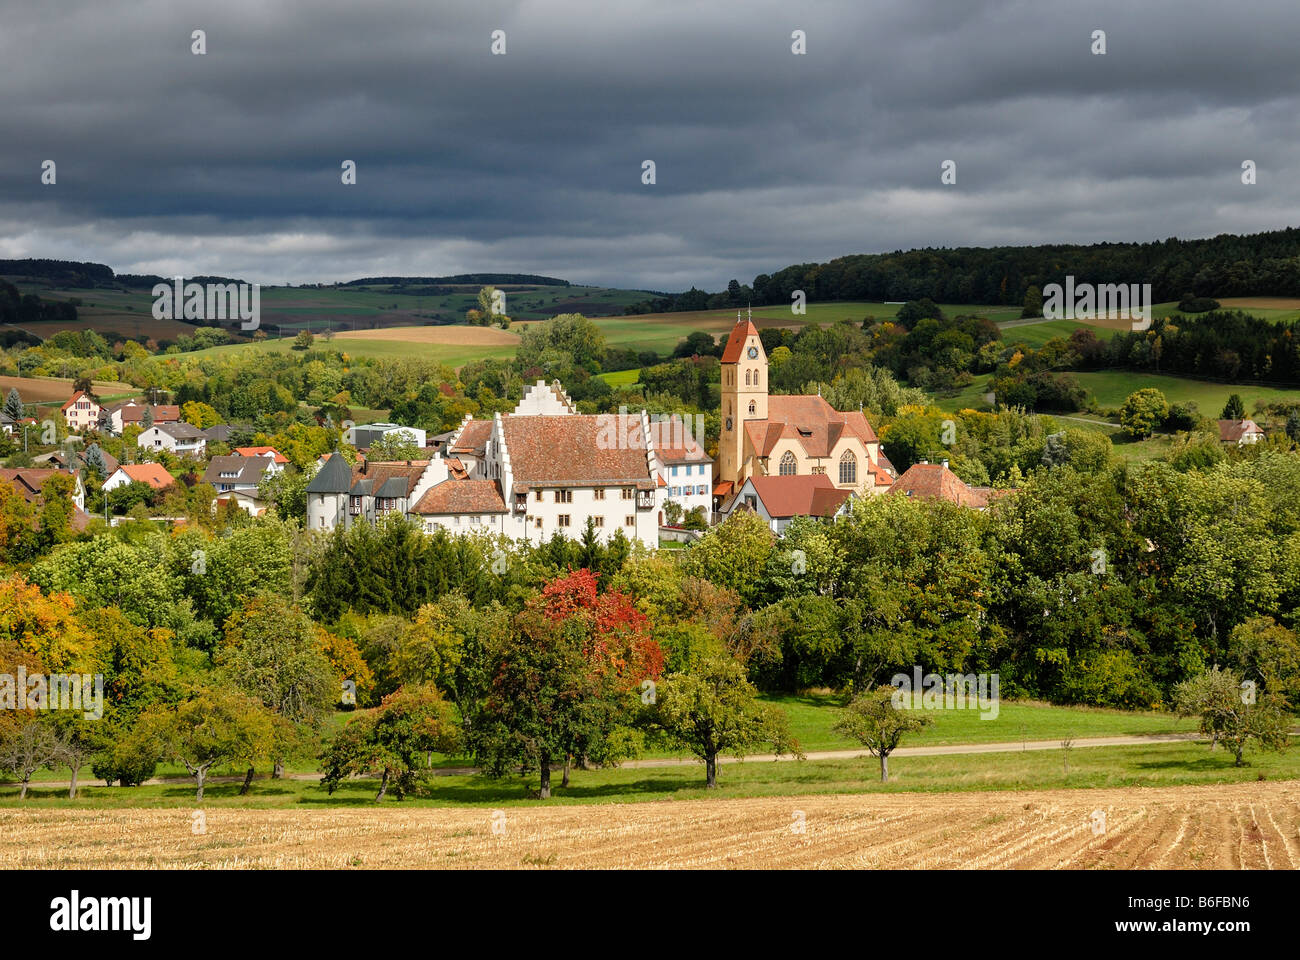 The historic center of Weil with its St. Nikolauskirche or St. Nikolaus Church and Blumenfeld Palace, in the region Stock Photo